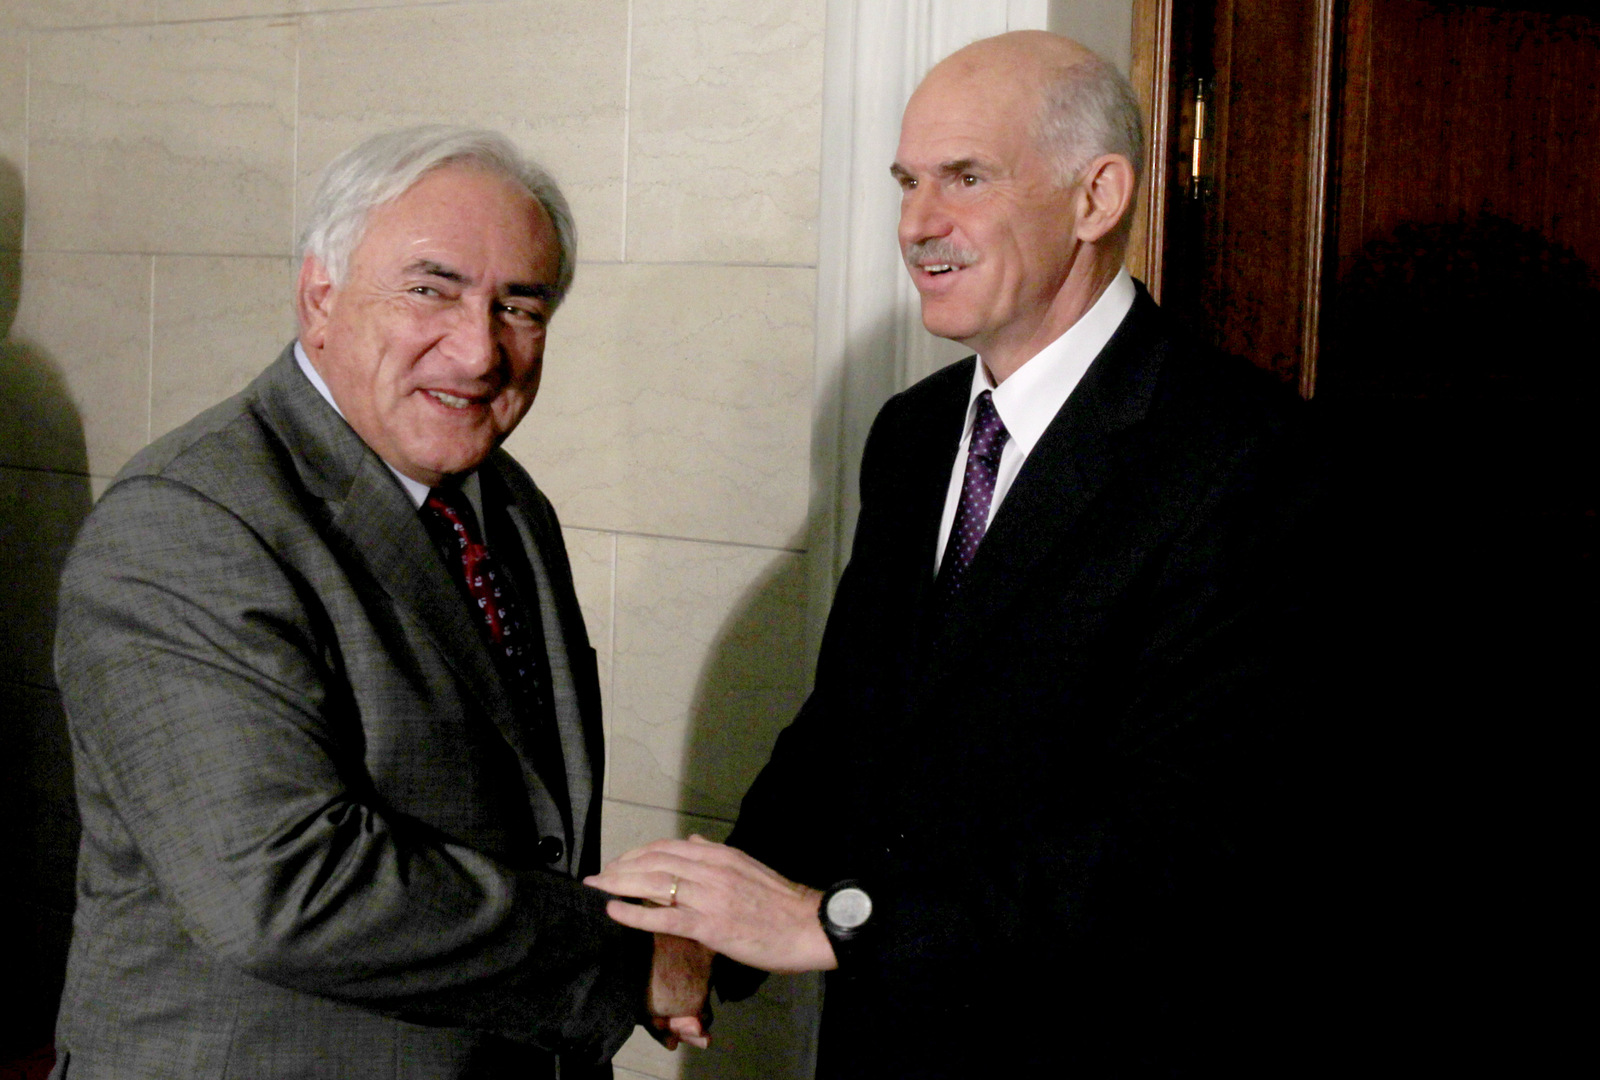 Greek Prime Minister George Papandreou, right, welcomes the head of the International Monetary Fund Dominique Strauss-Kahn at his office in Athens on Dec. 7, 2010. Strauss-Kahn was in Greece to negotiate terms of the repayment of the three-year euro110 billion ($150 billion) bailout loan intended to saved the debt-ridden country from default. (AP/Thanassis Stavrakis)